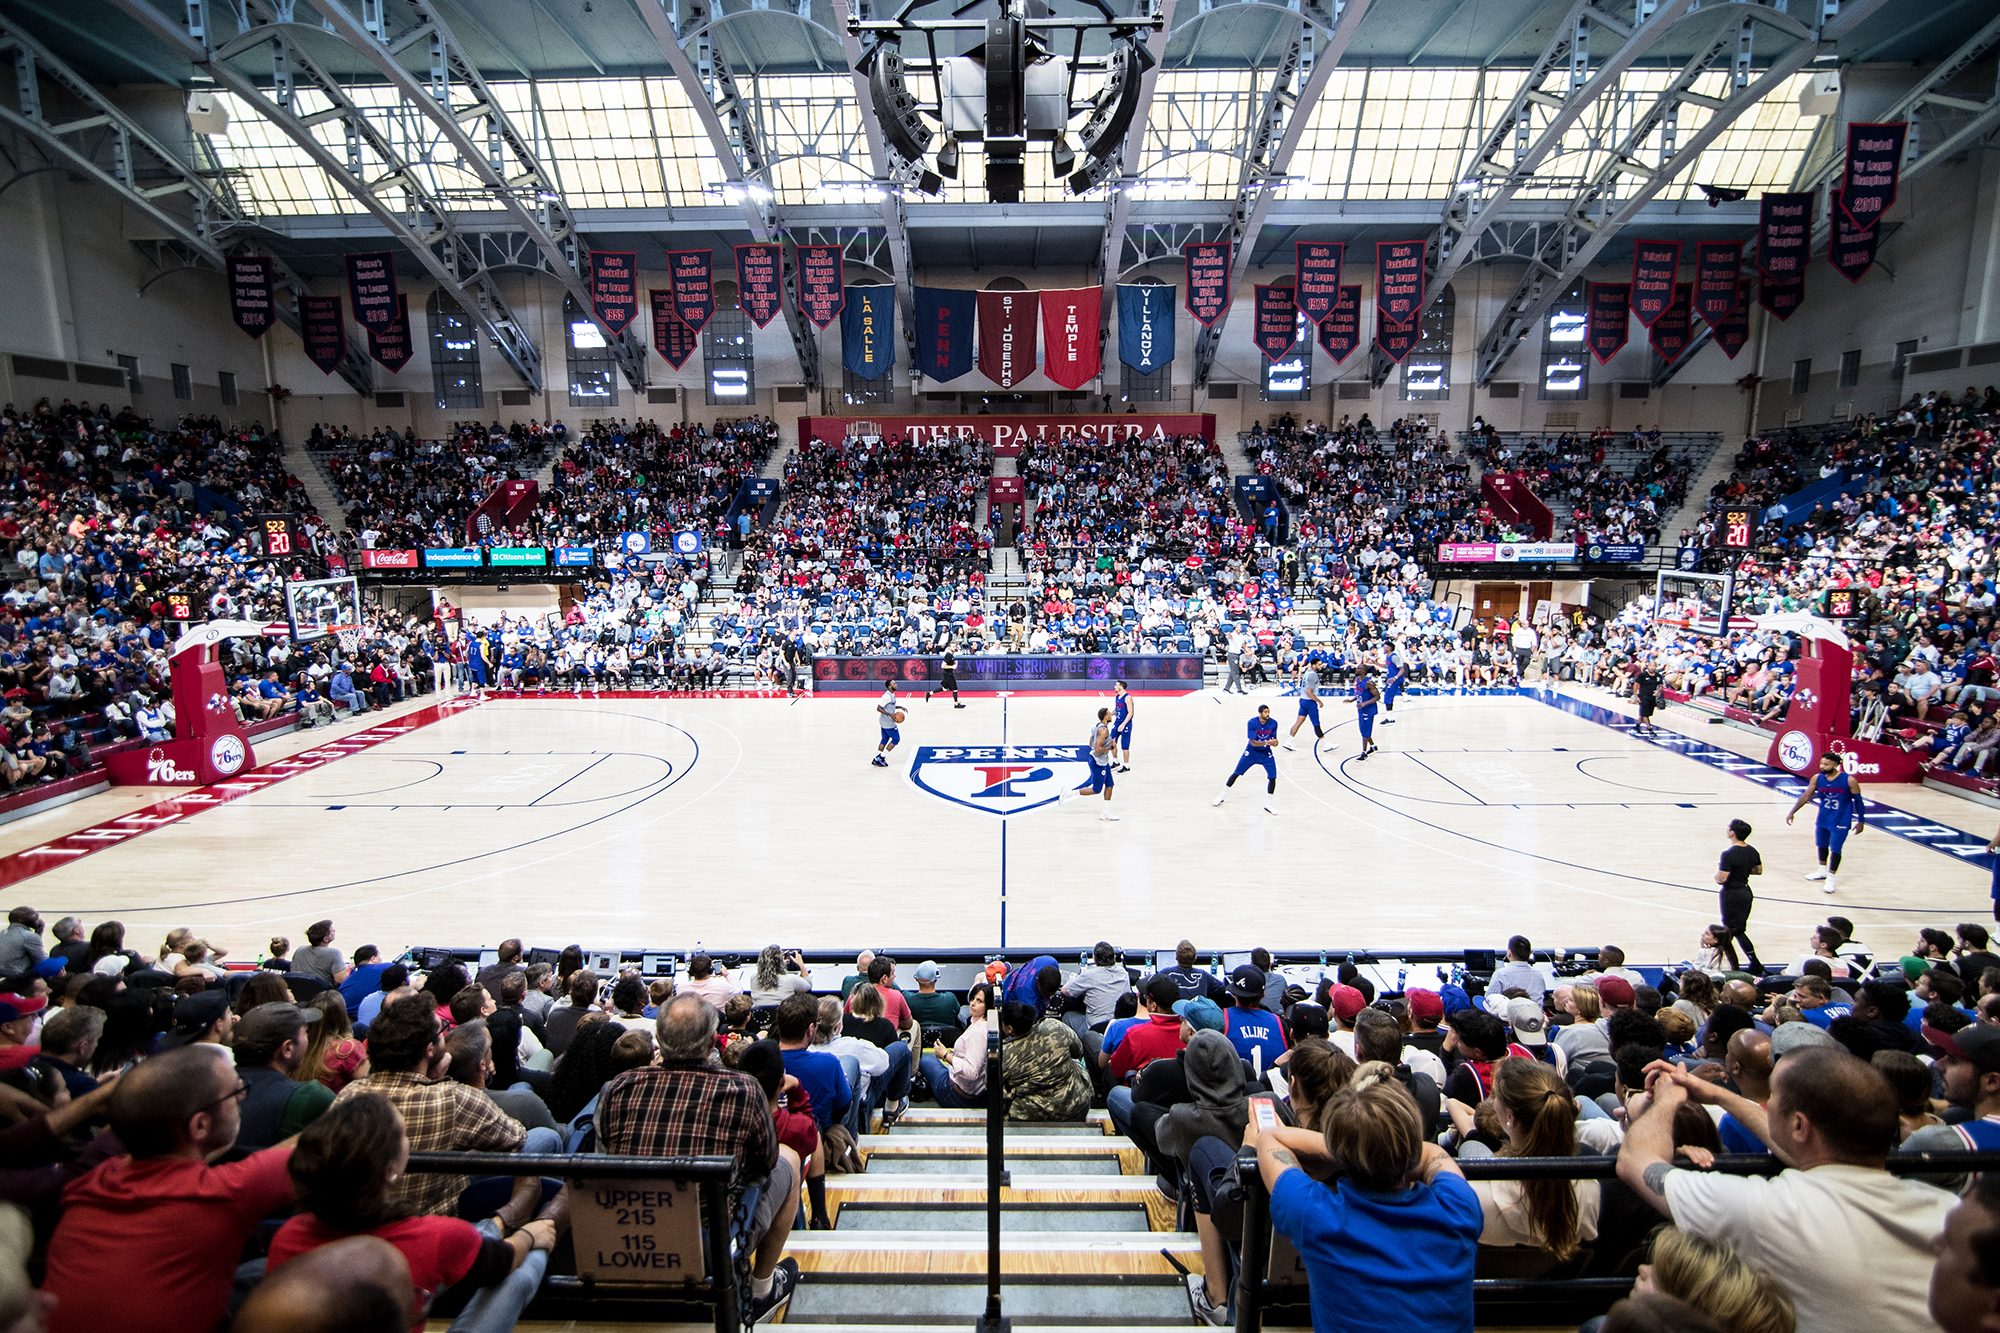 Penn vs Temple Basketball at the Palestra - Limited availability! – Saturday, January 25th